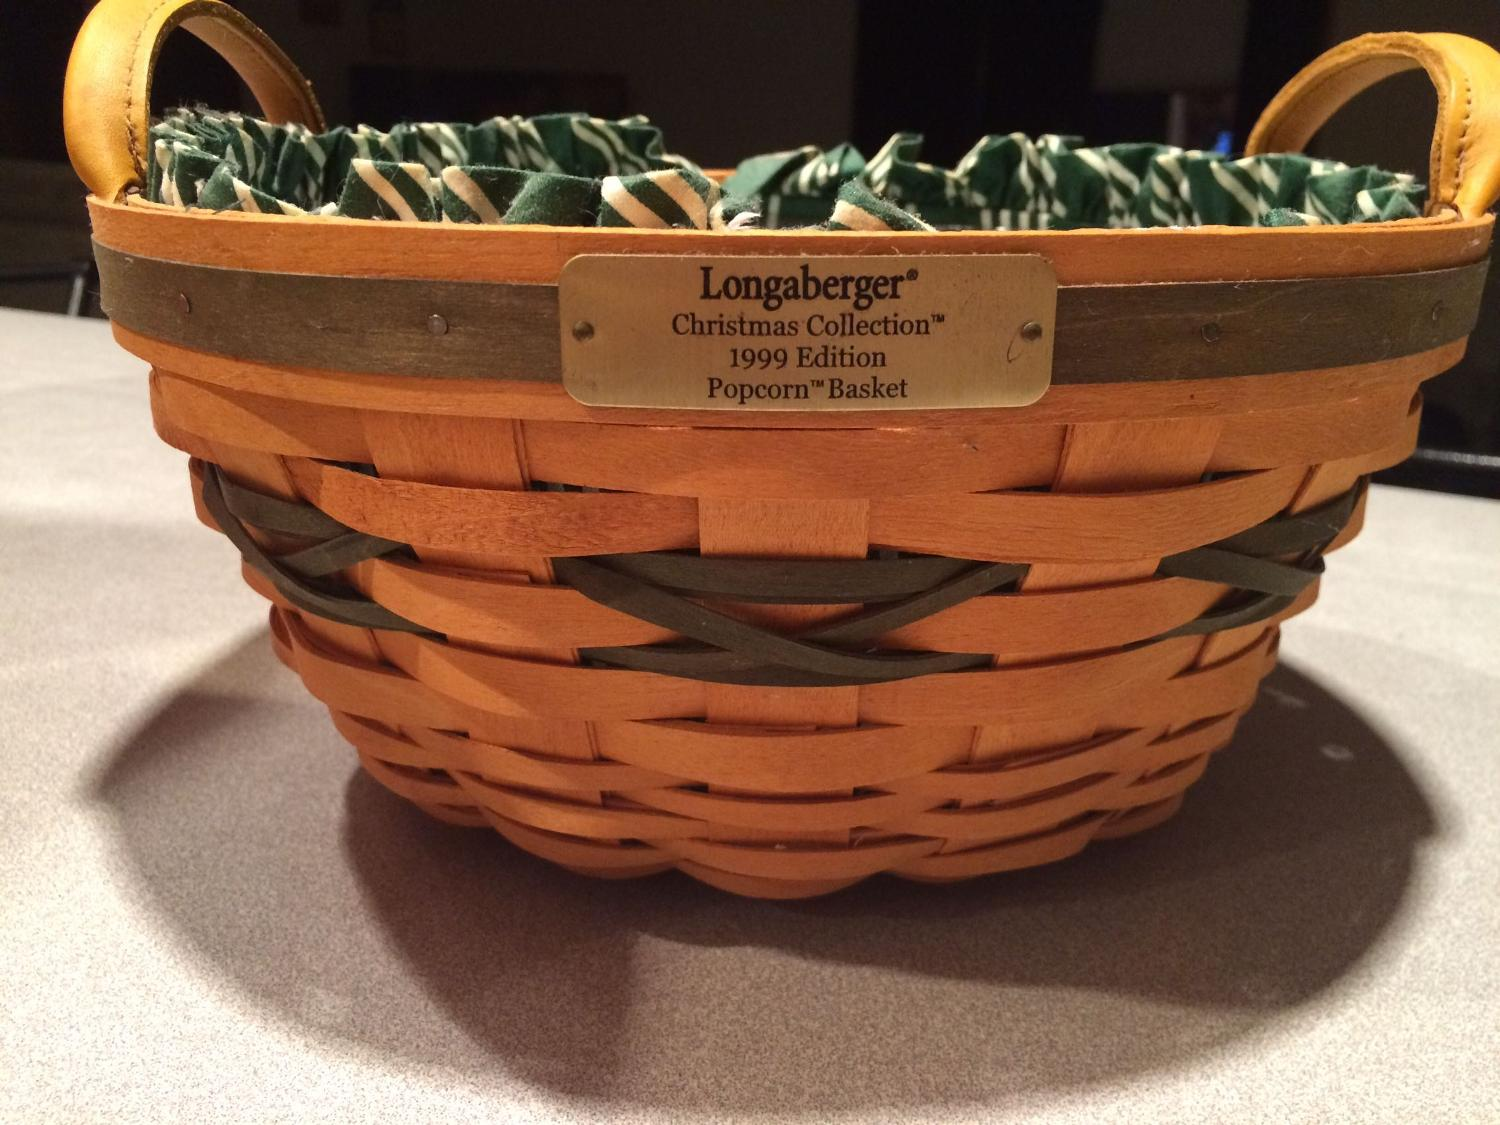 Best longaberger 1999 christmas collection popcorn basket Longaberger baskets for sale